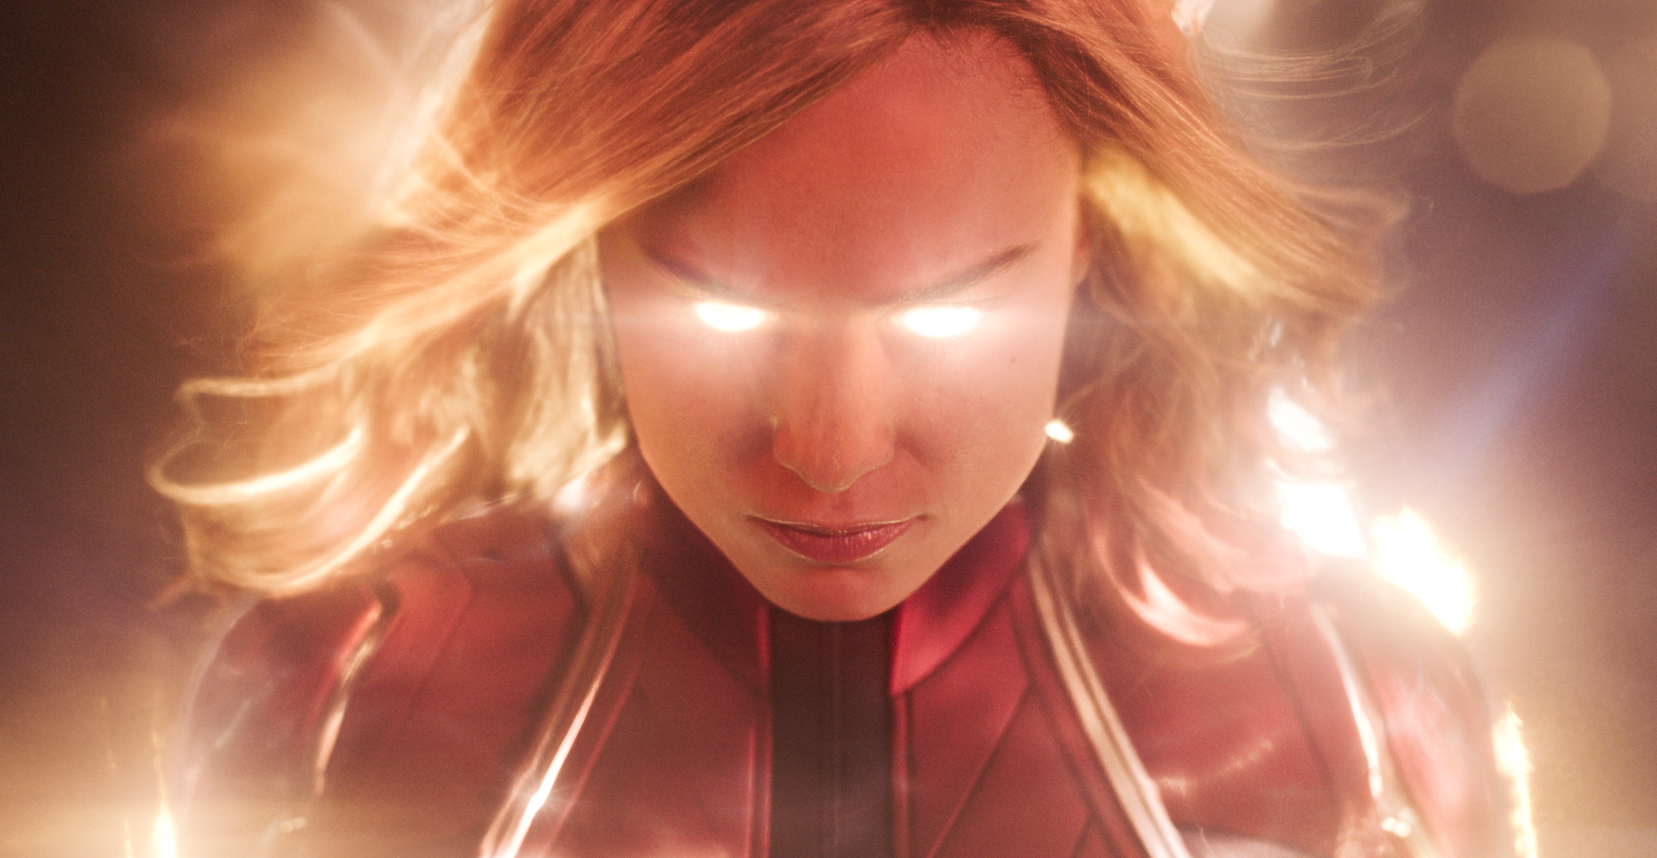 Captain Marvel: The first reviews for Brie Larson's blockbuster are seriously divided